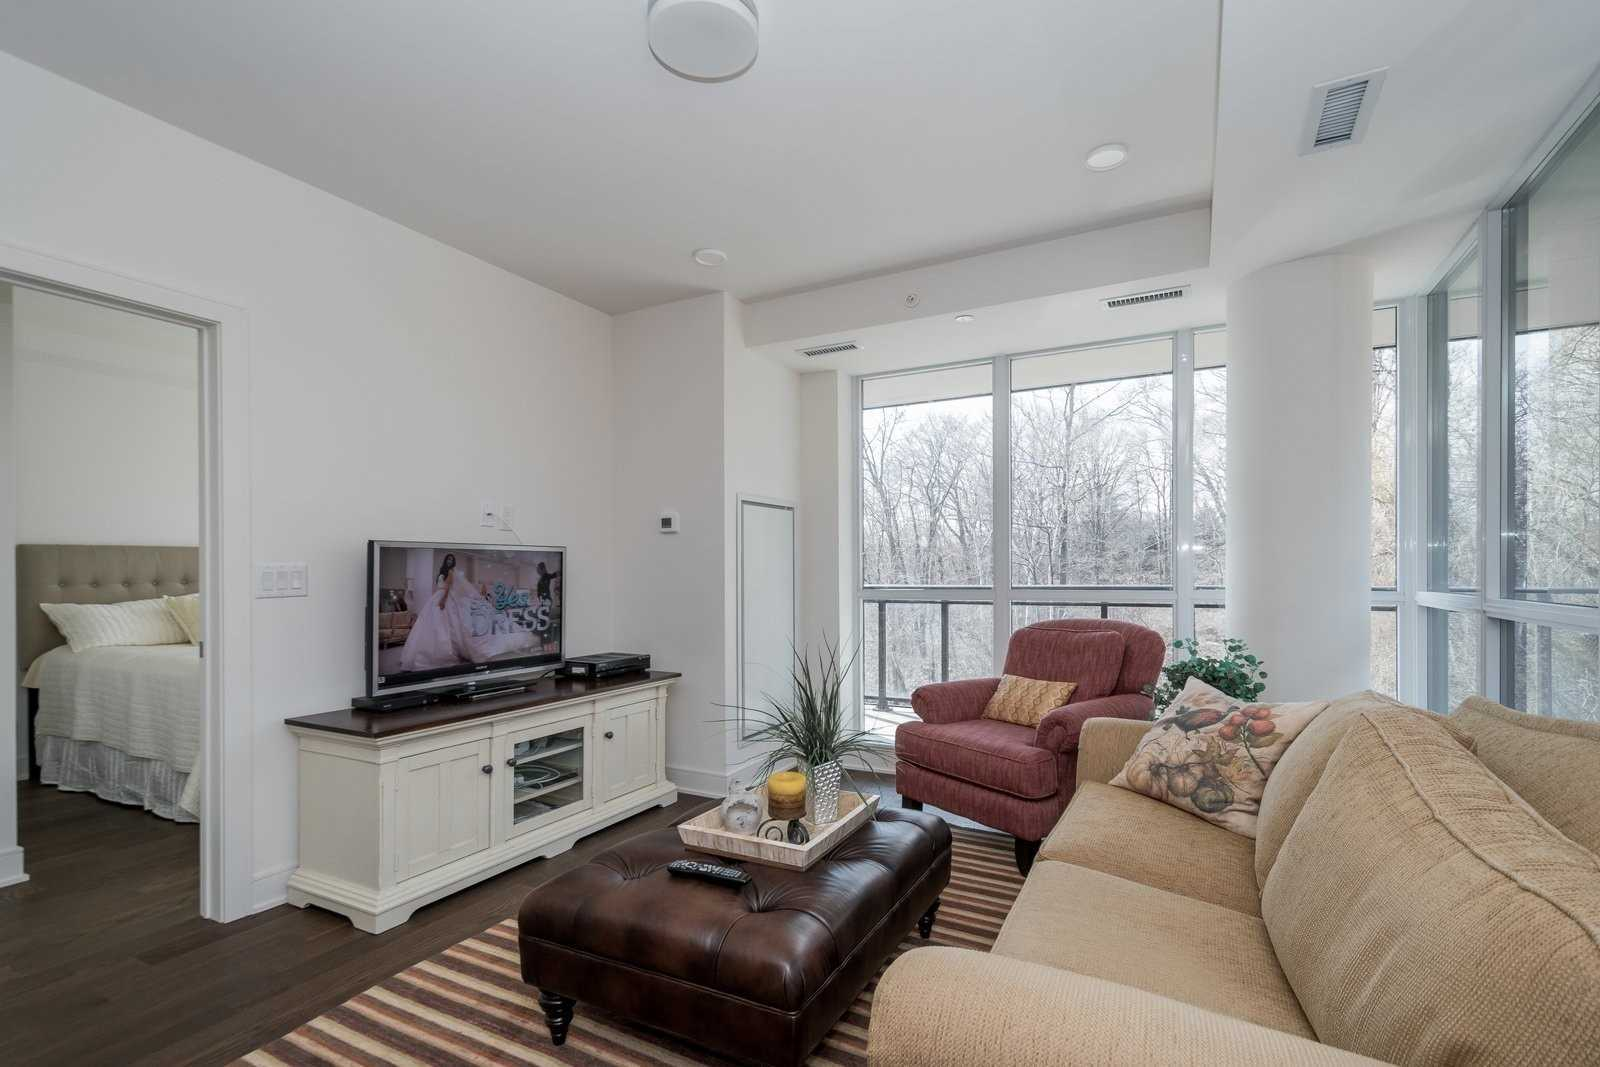 #208 - 1575 Lakeshore Rd W, Mississauga W4388901